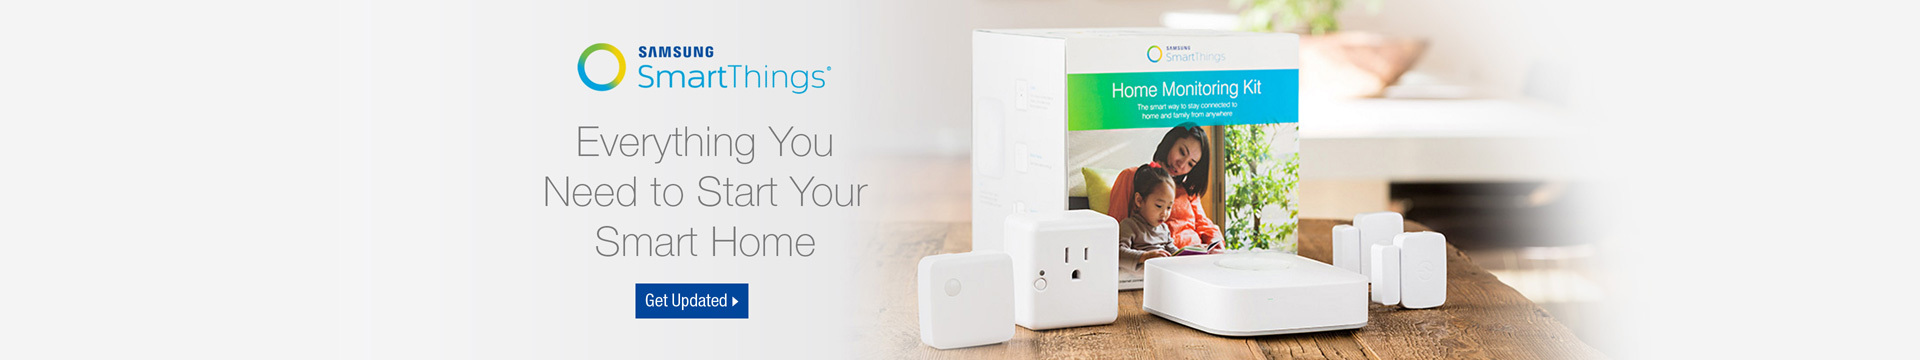 Everything you need to start your smart home